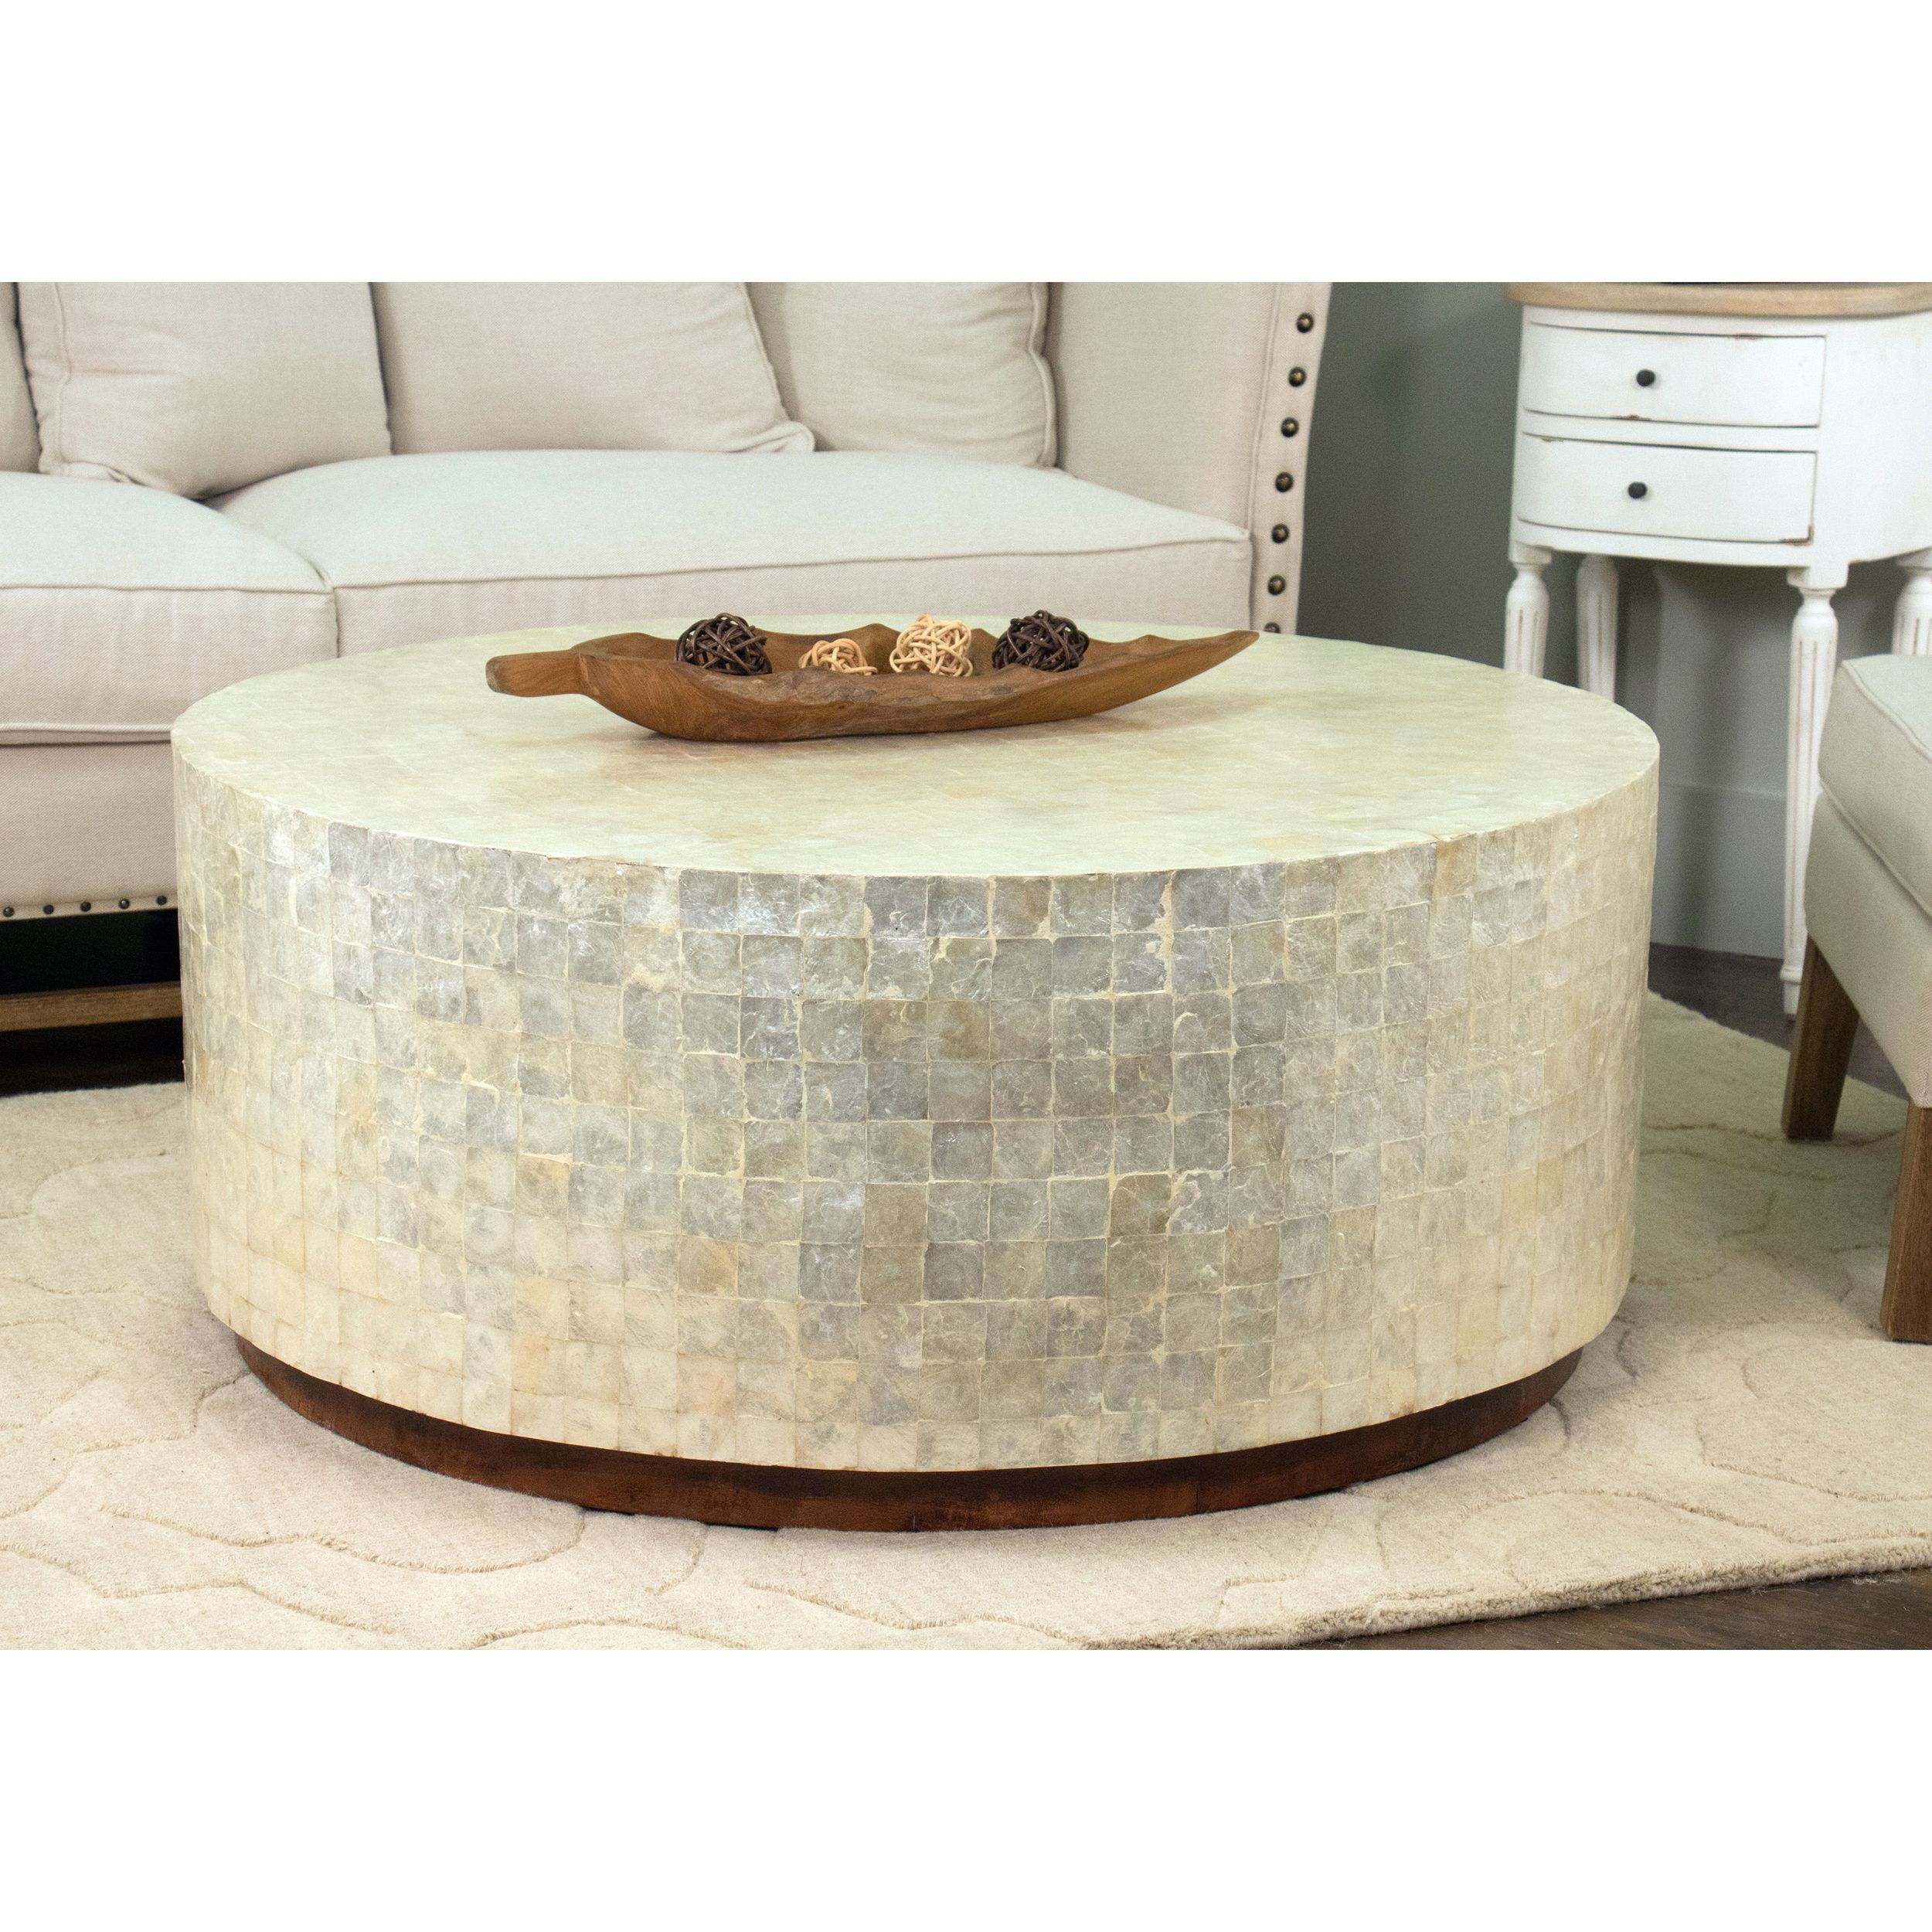 This Elegant Round Coffee Table Features Beautiful White Capiz Shells That Form A Modern Geometric Design Offers Elegance And Would Look Great